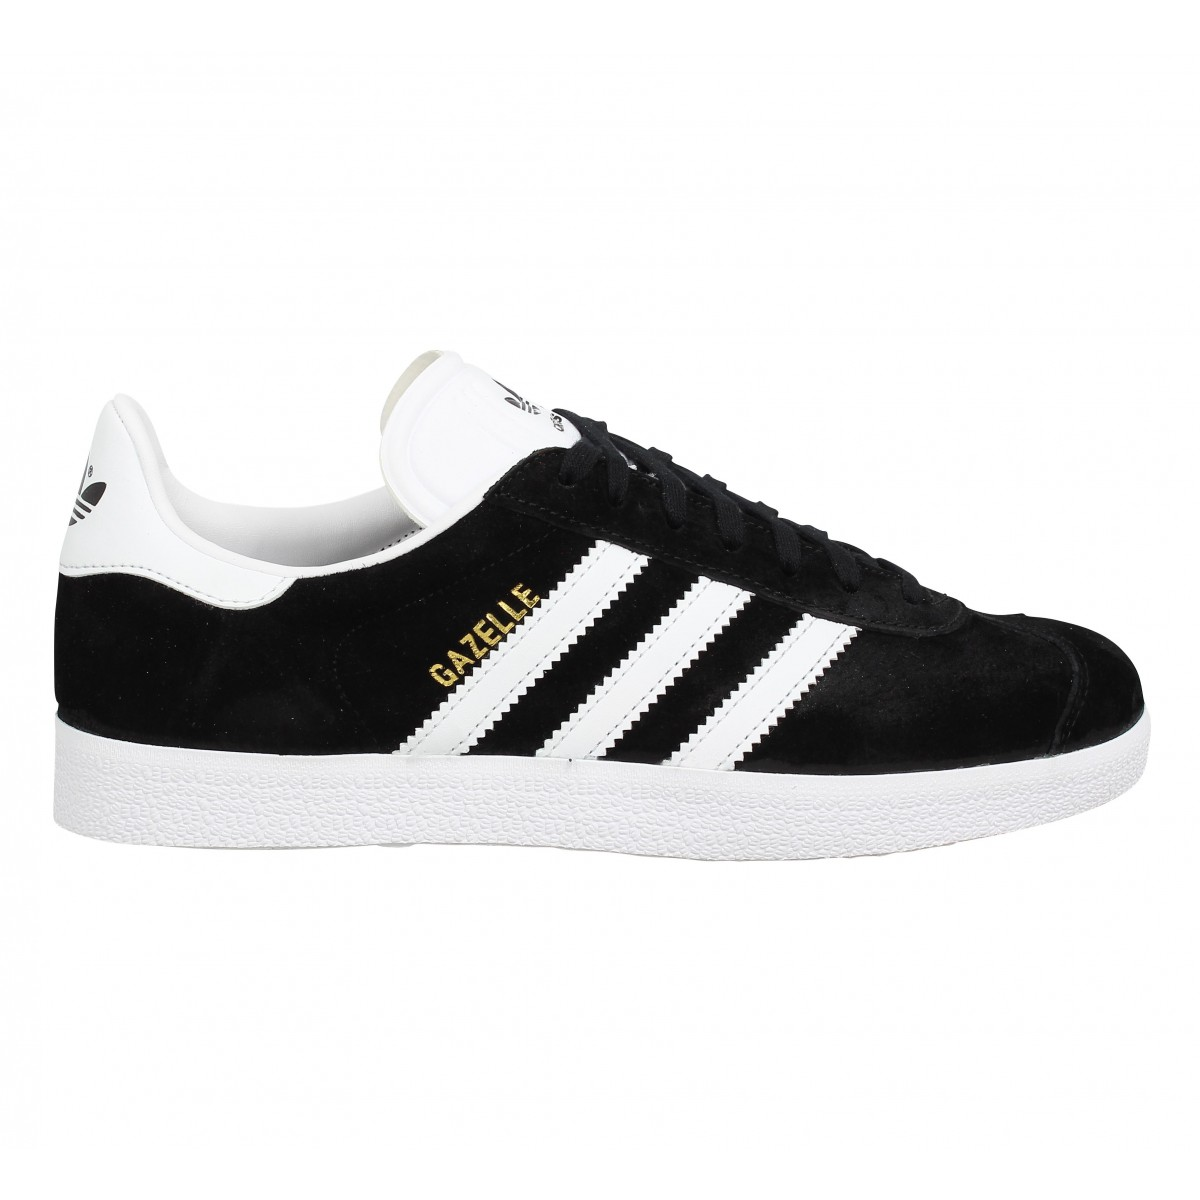 Velours Chaussures Noir Adidas BlancFanny Gazelle Homme NnwOX80Pk